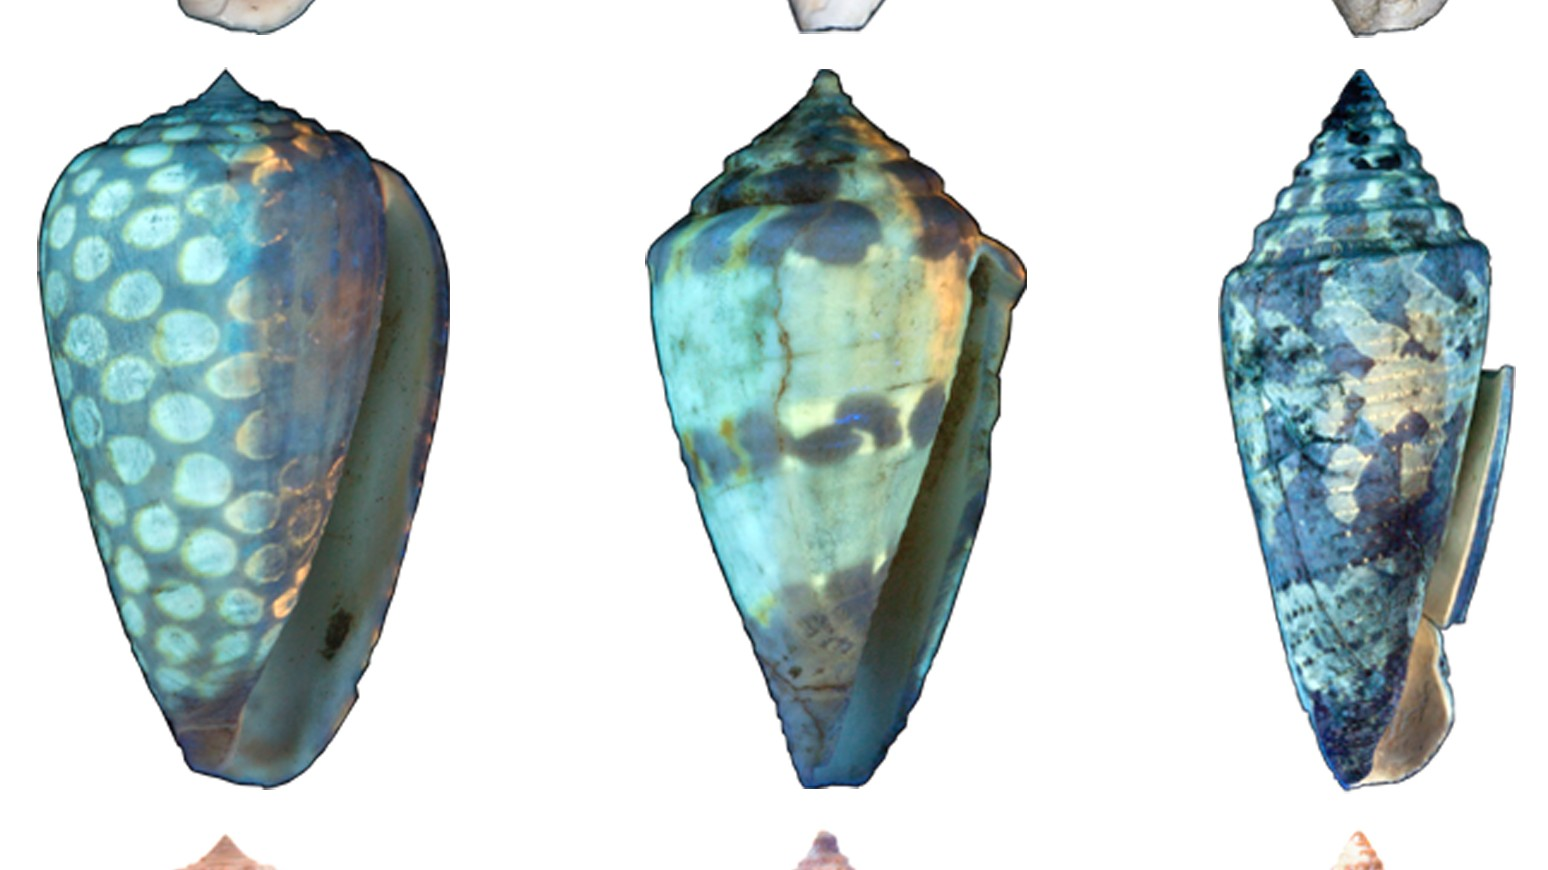 UV Light and Photoshop Return Color to 6 Million Year-Old Seashells